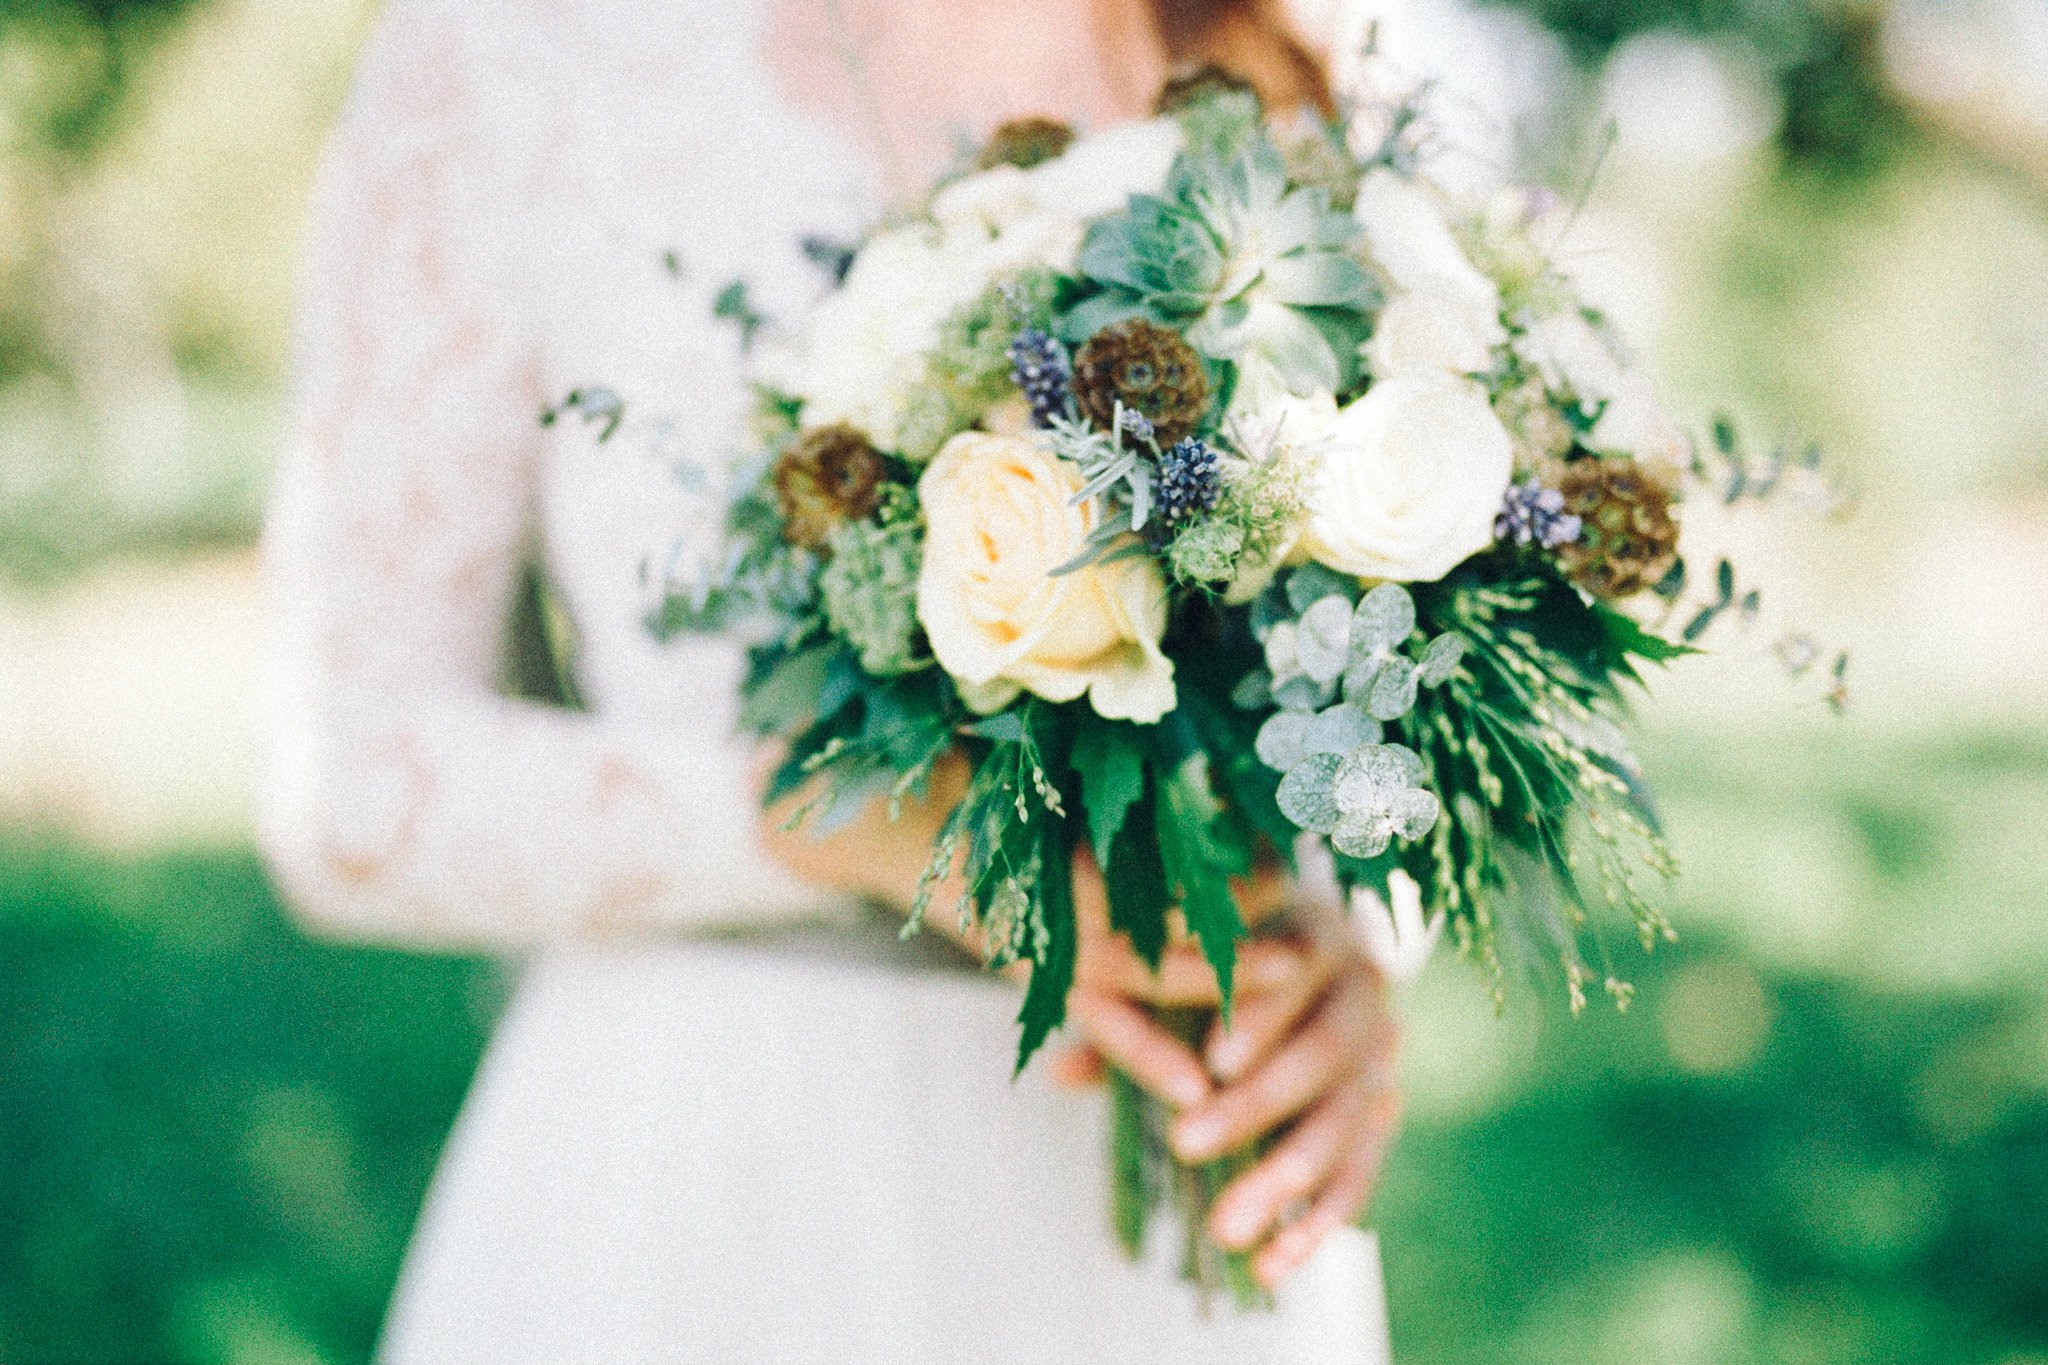 13-wedding-gown-bouquet-flowers